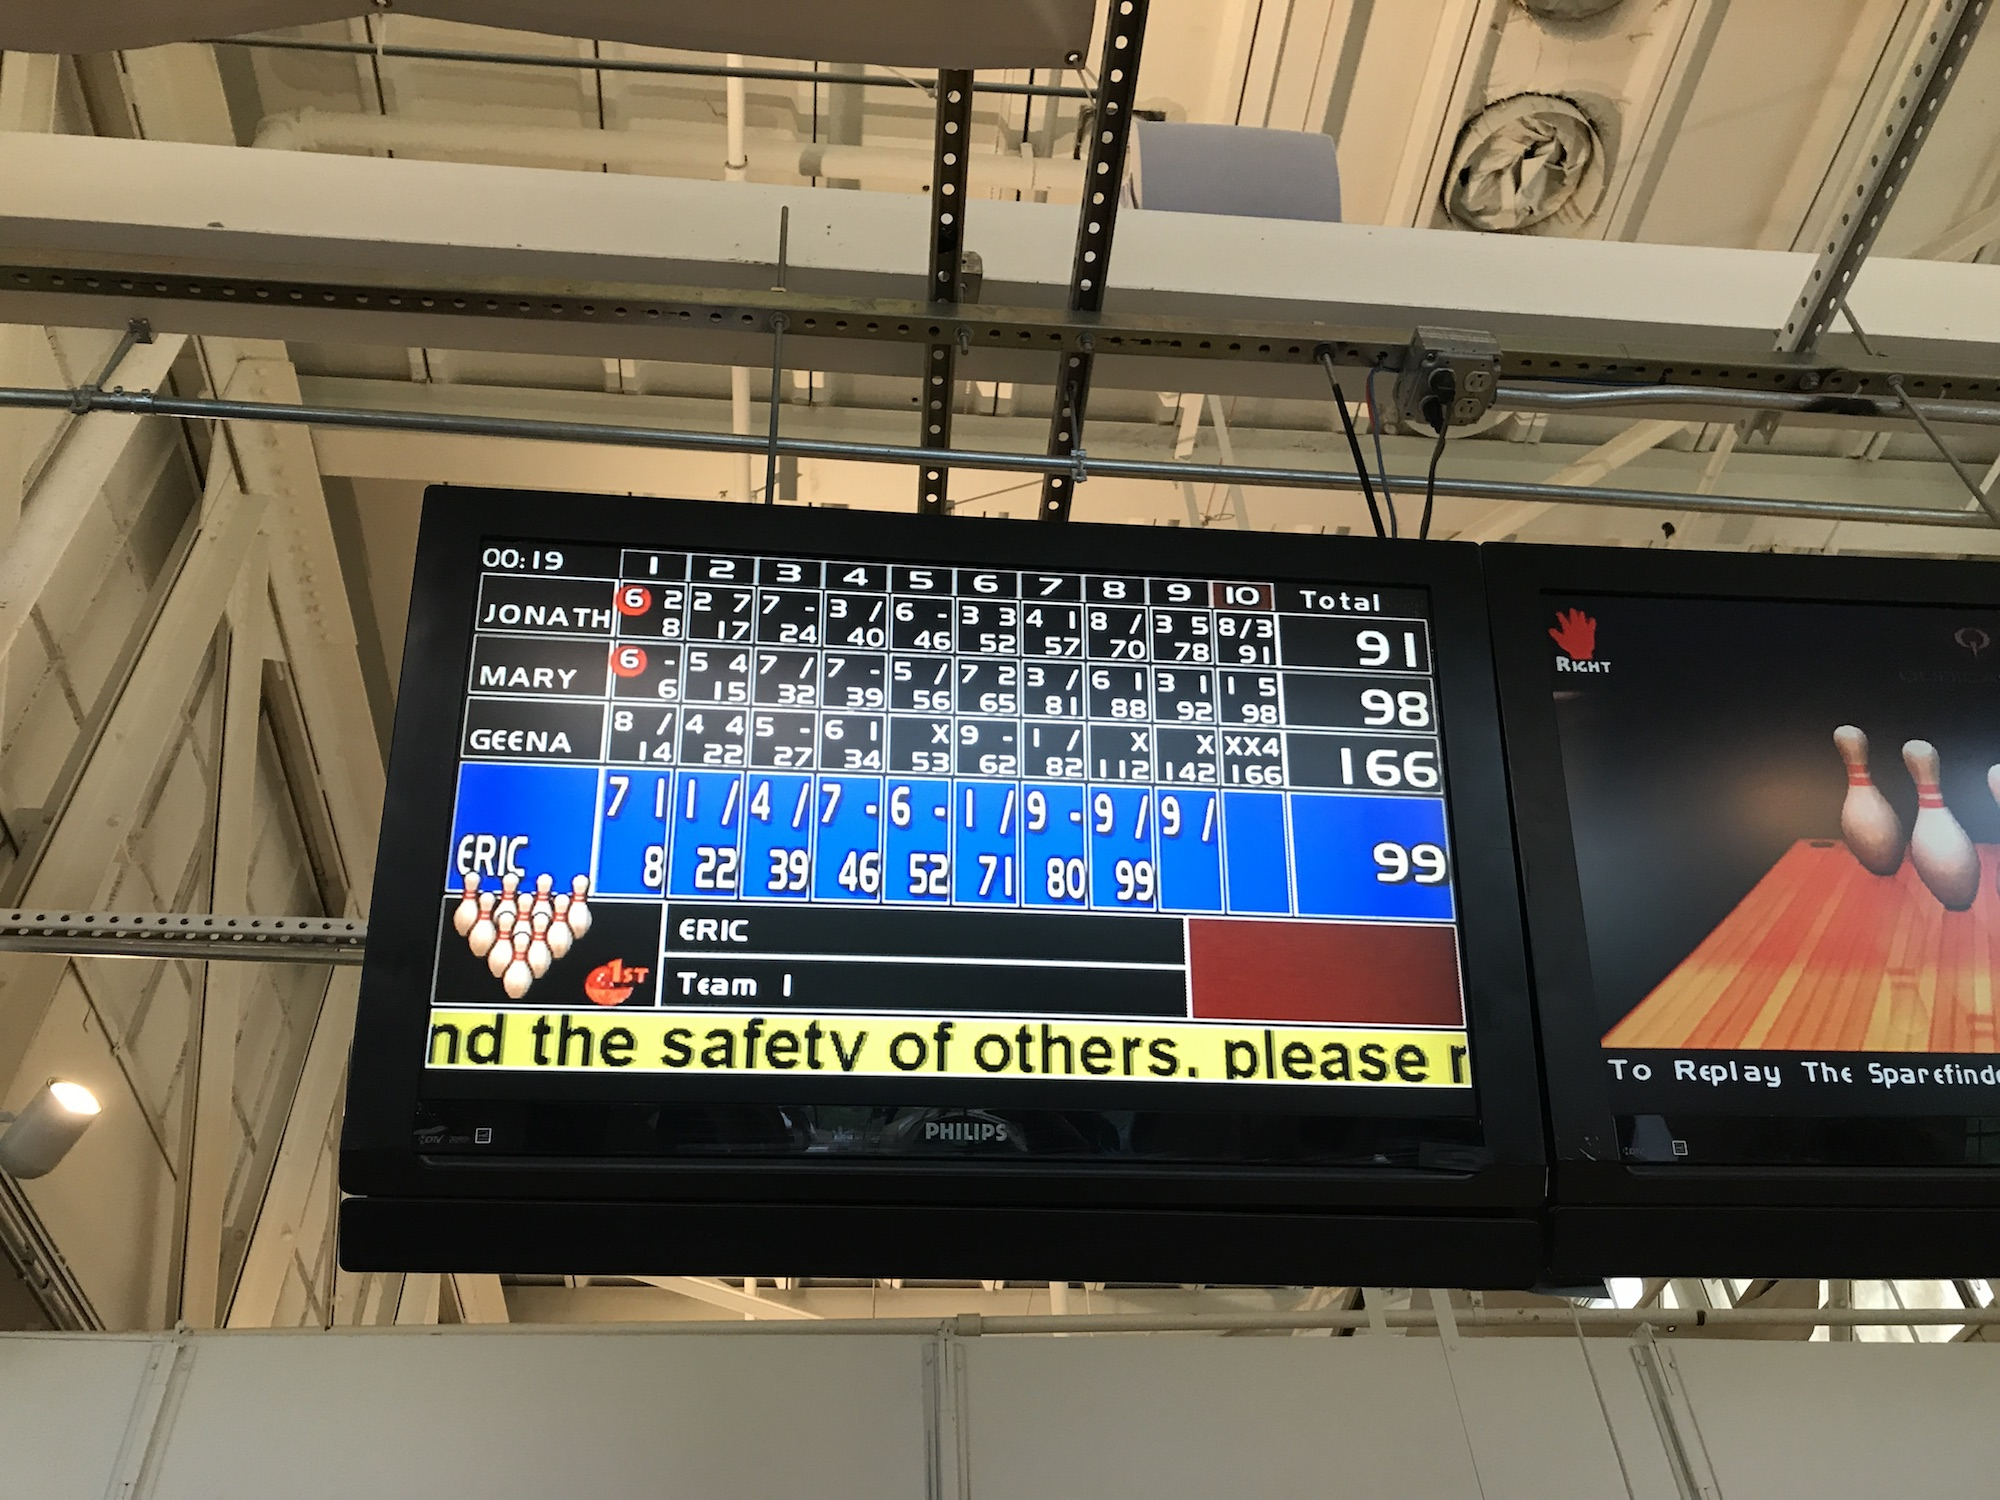 Geena Matuson (@geenamatuson) scores 4 strikes in a row at Radio Social in Rochester, NY, 2018!